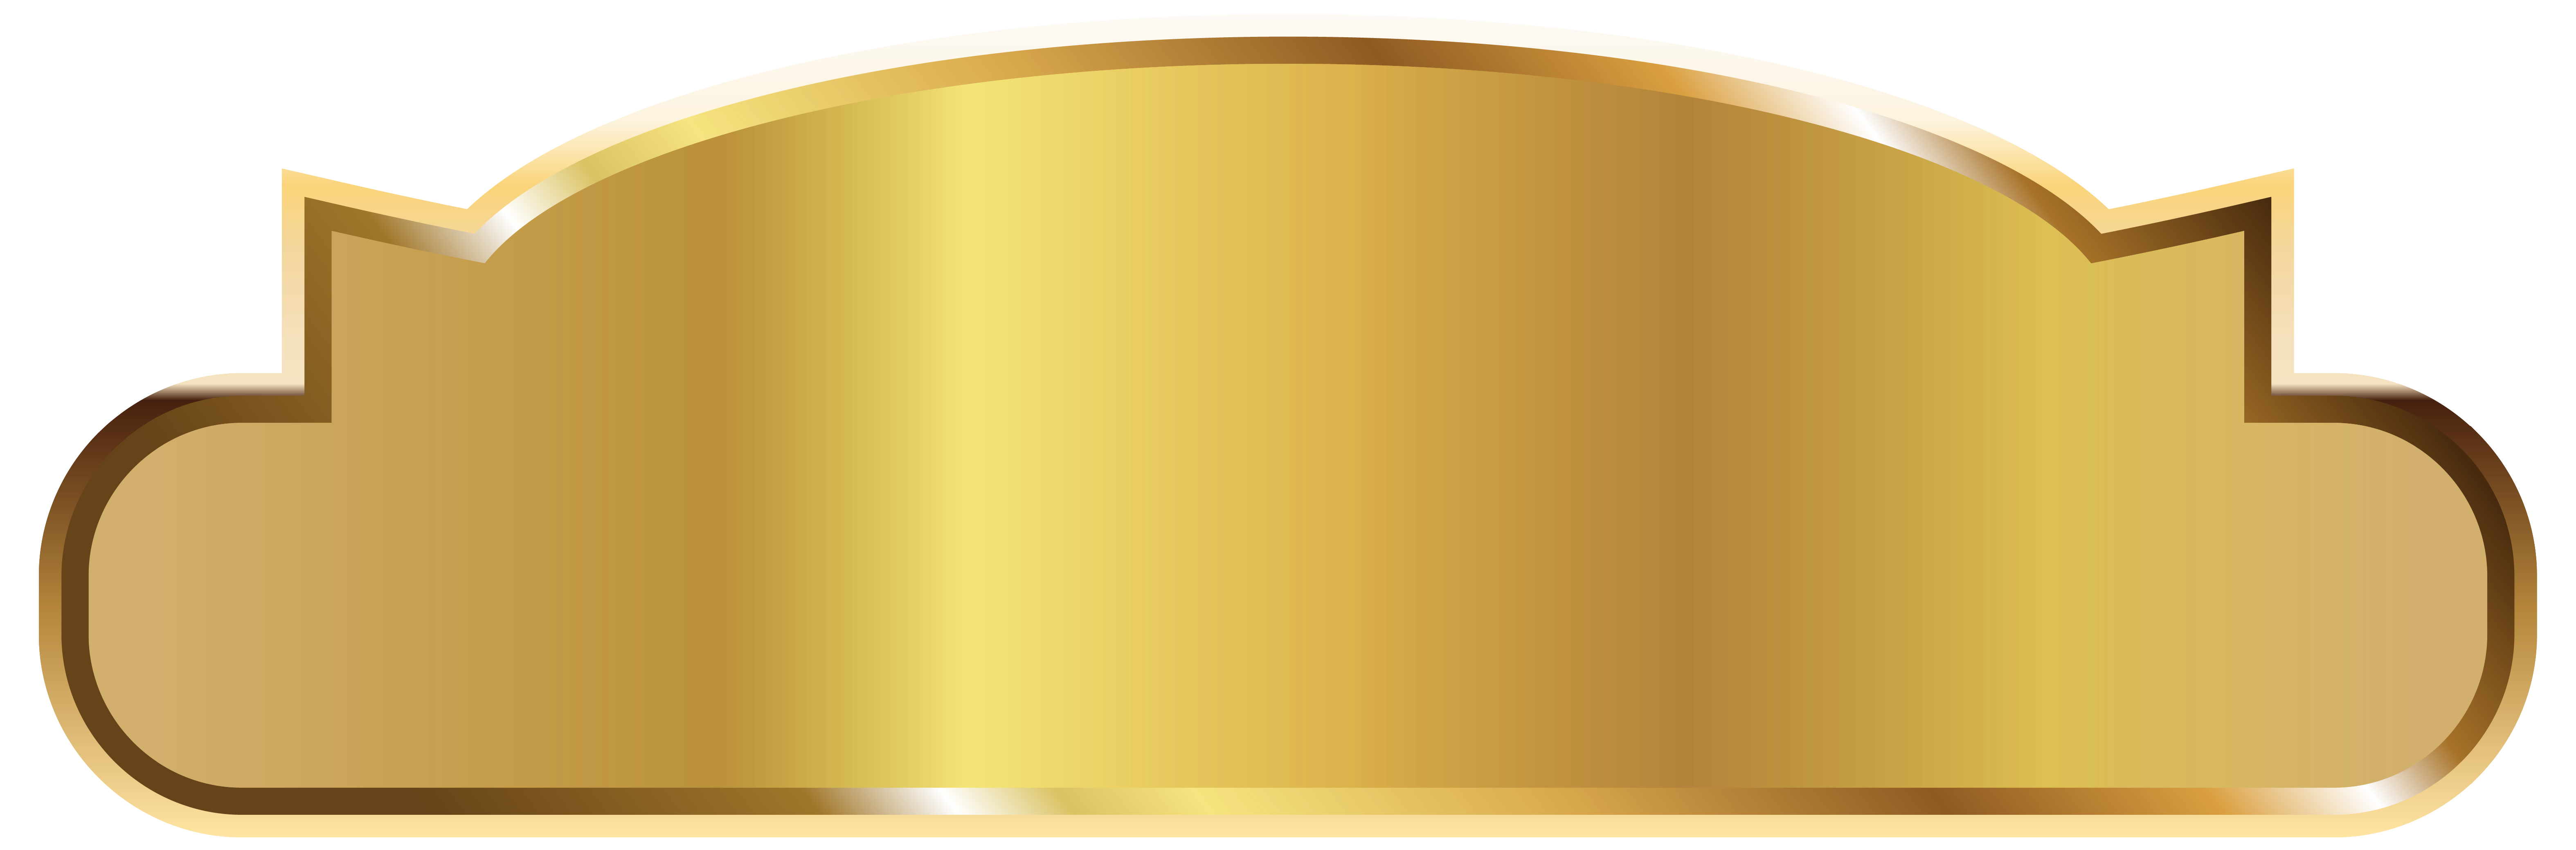 Gold PNG image - Gold PNG